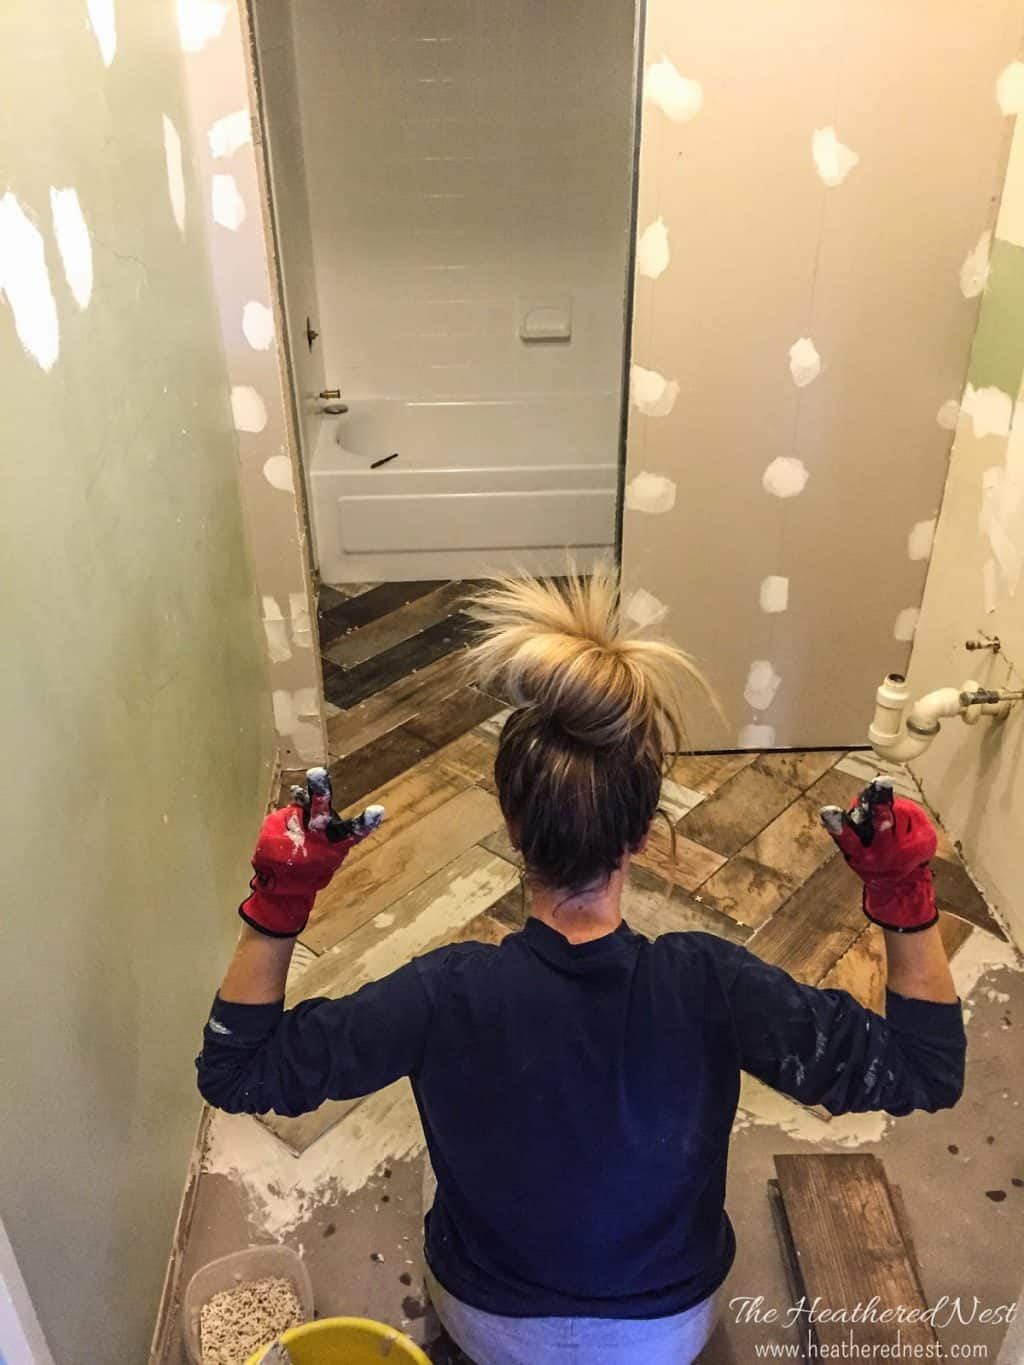 back of woman tiling bathroom floor with workgloves on